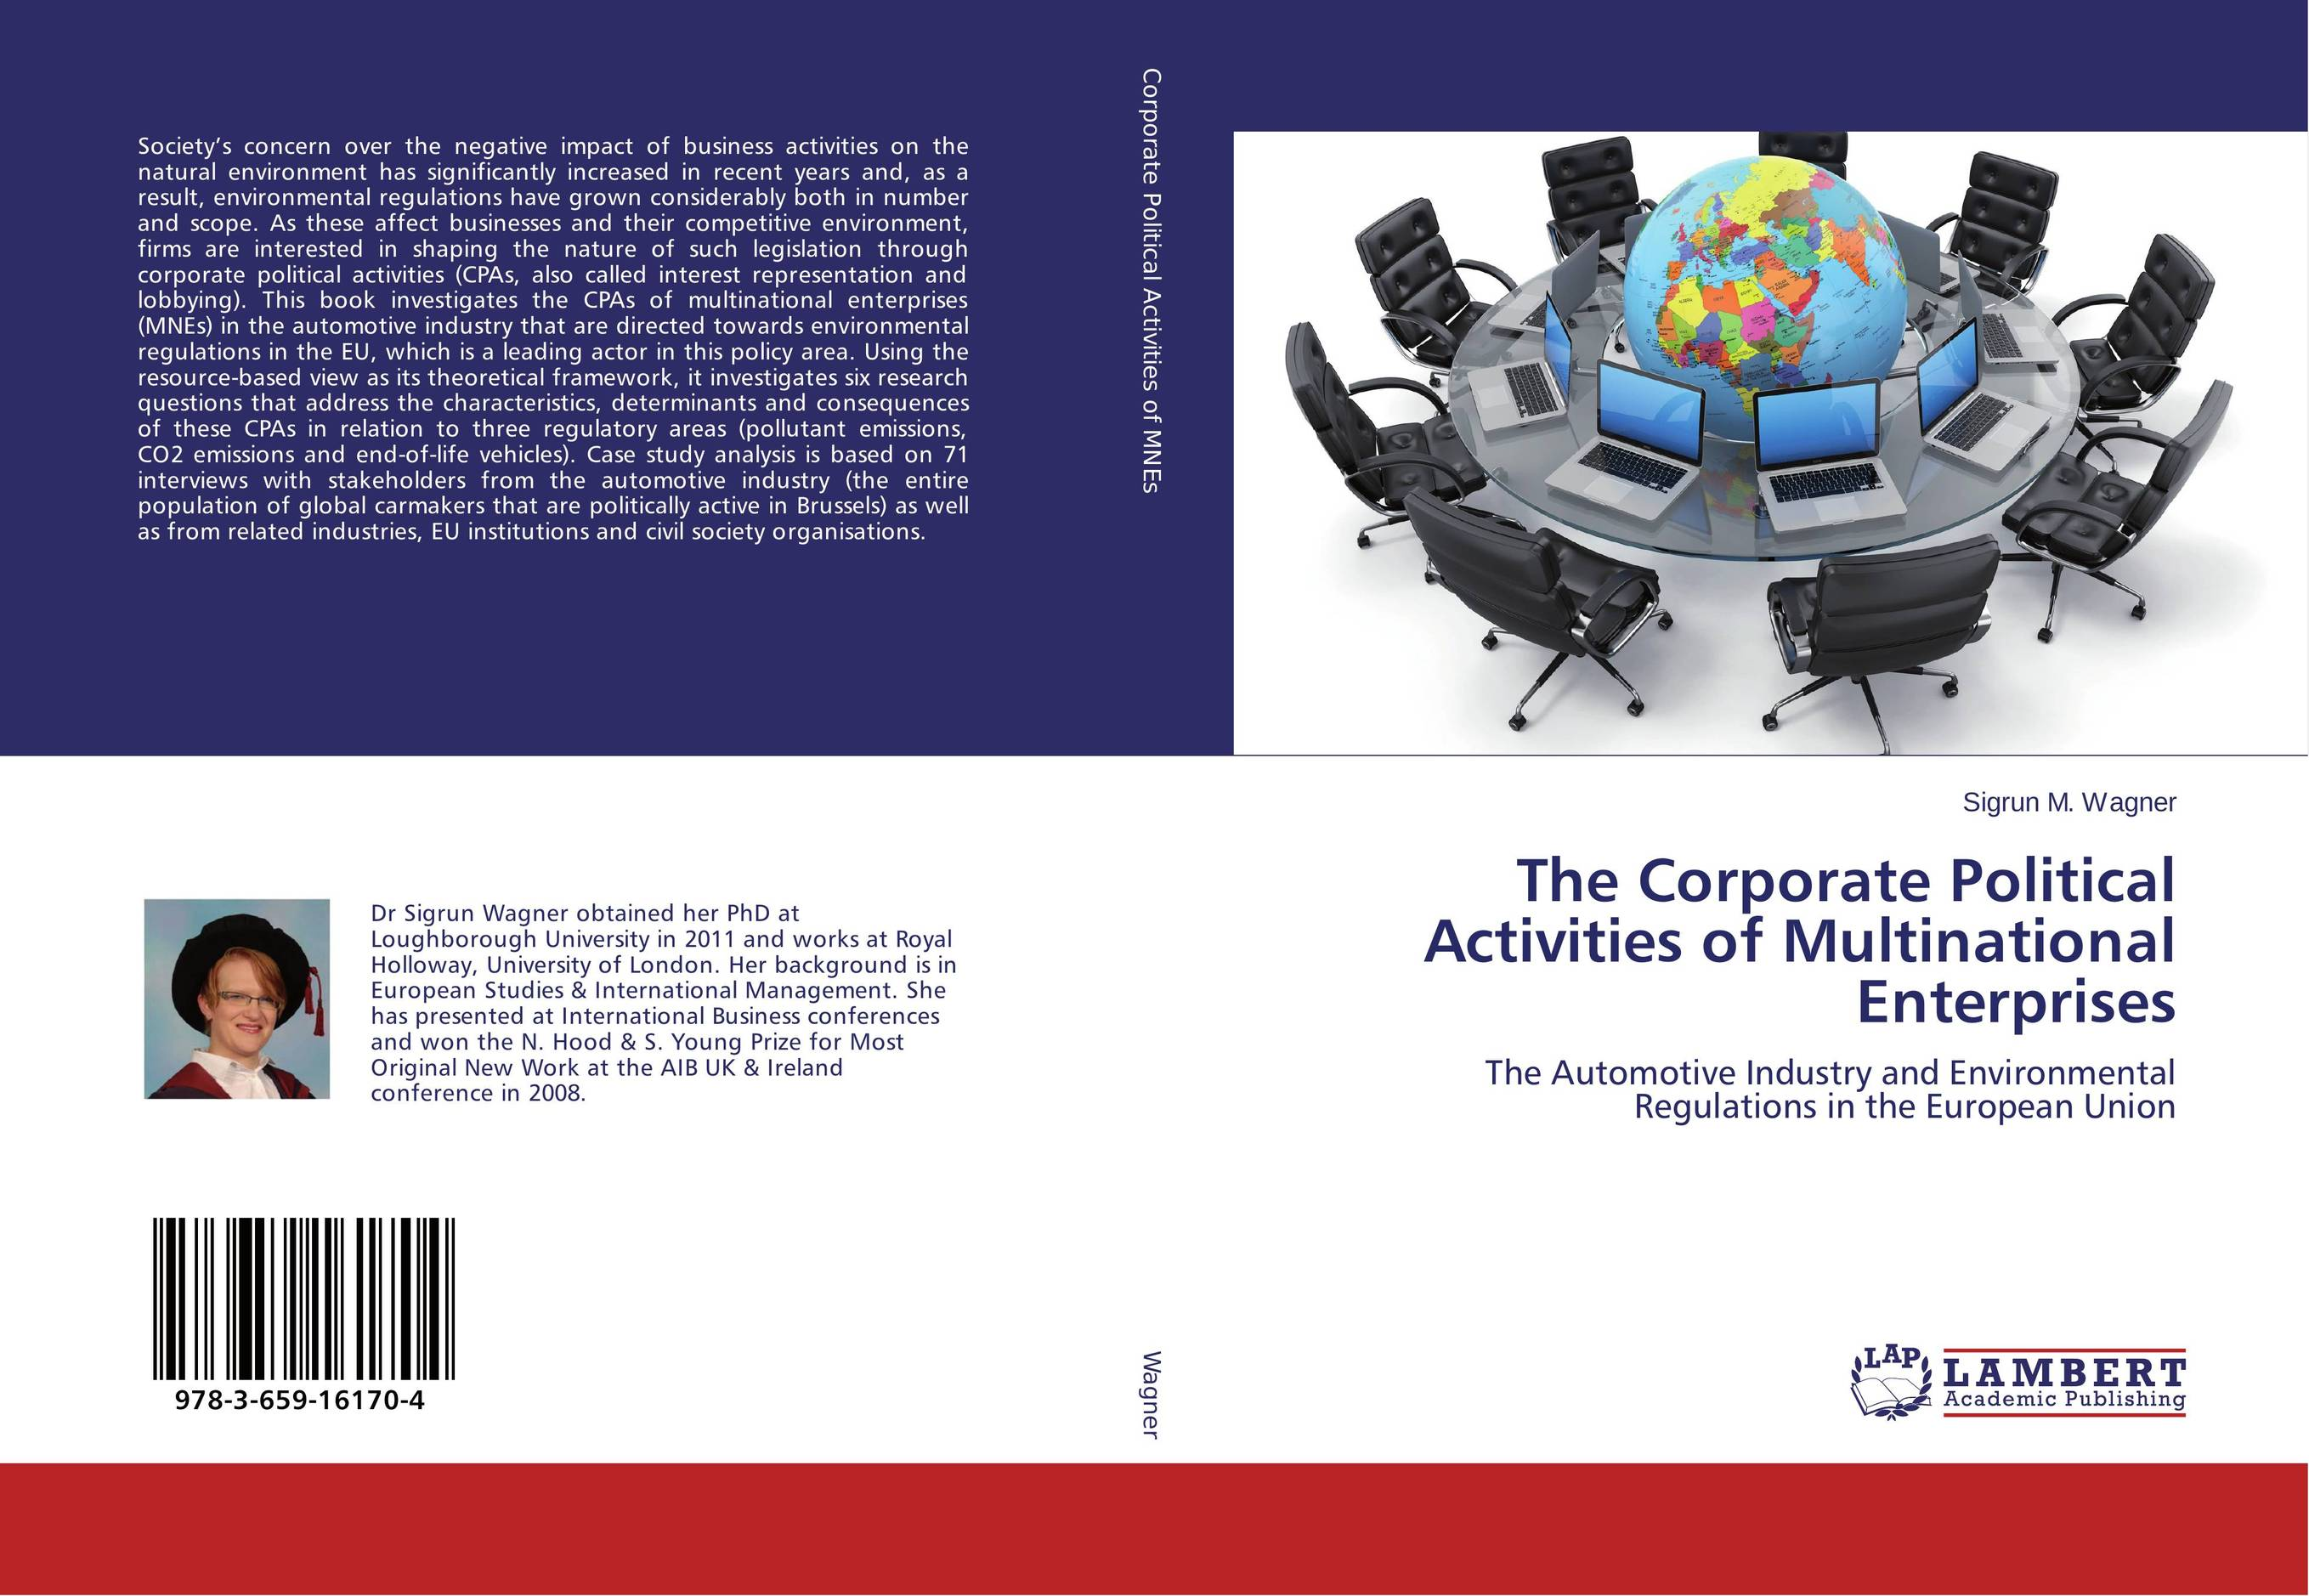 how corporate culture influence multi national enterprises' Multinational enterprises corporate culture in multinational how might 'national culture' influence the employee relations.